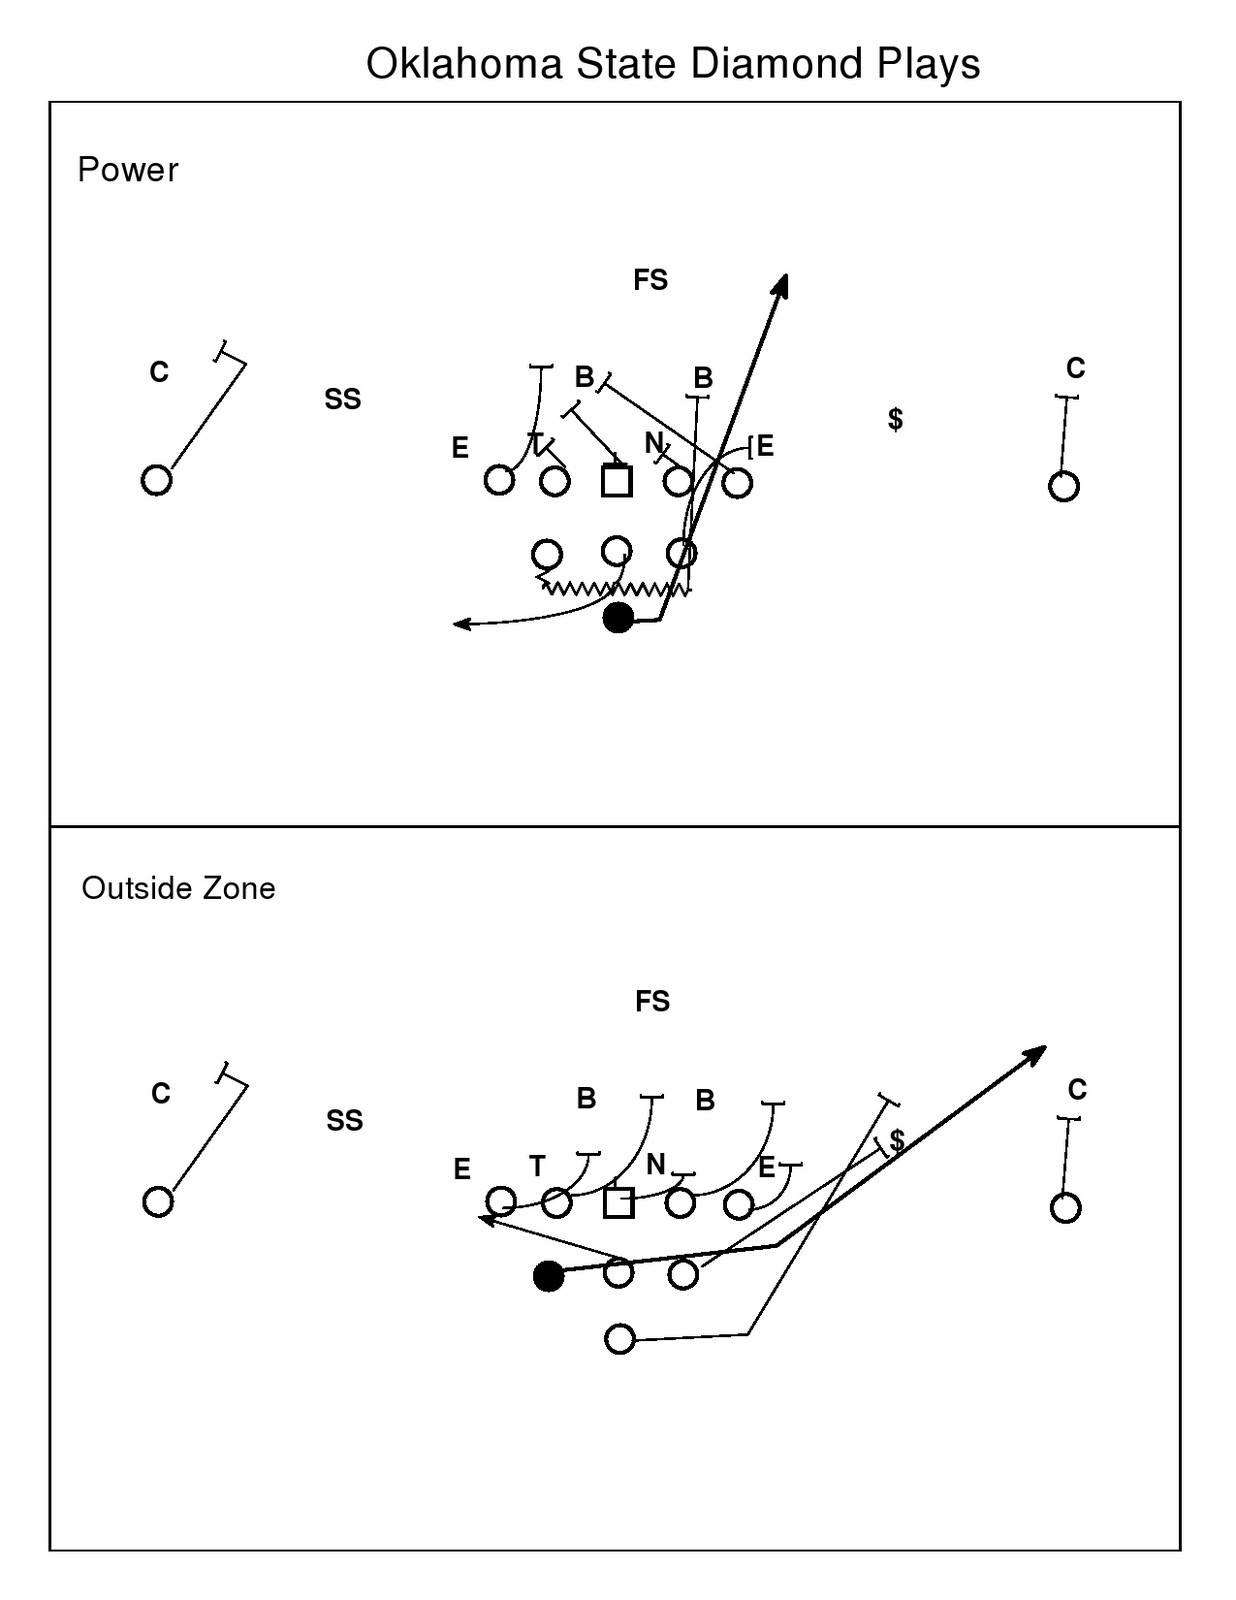 Football Offensive formations Template